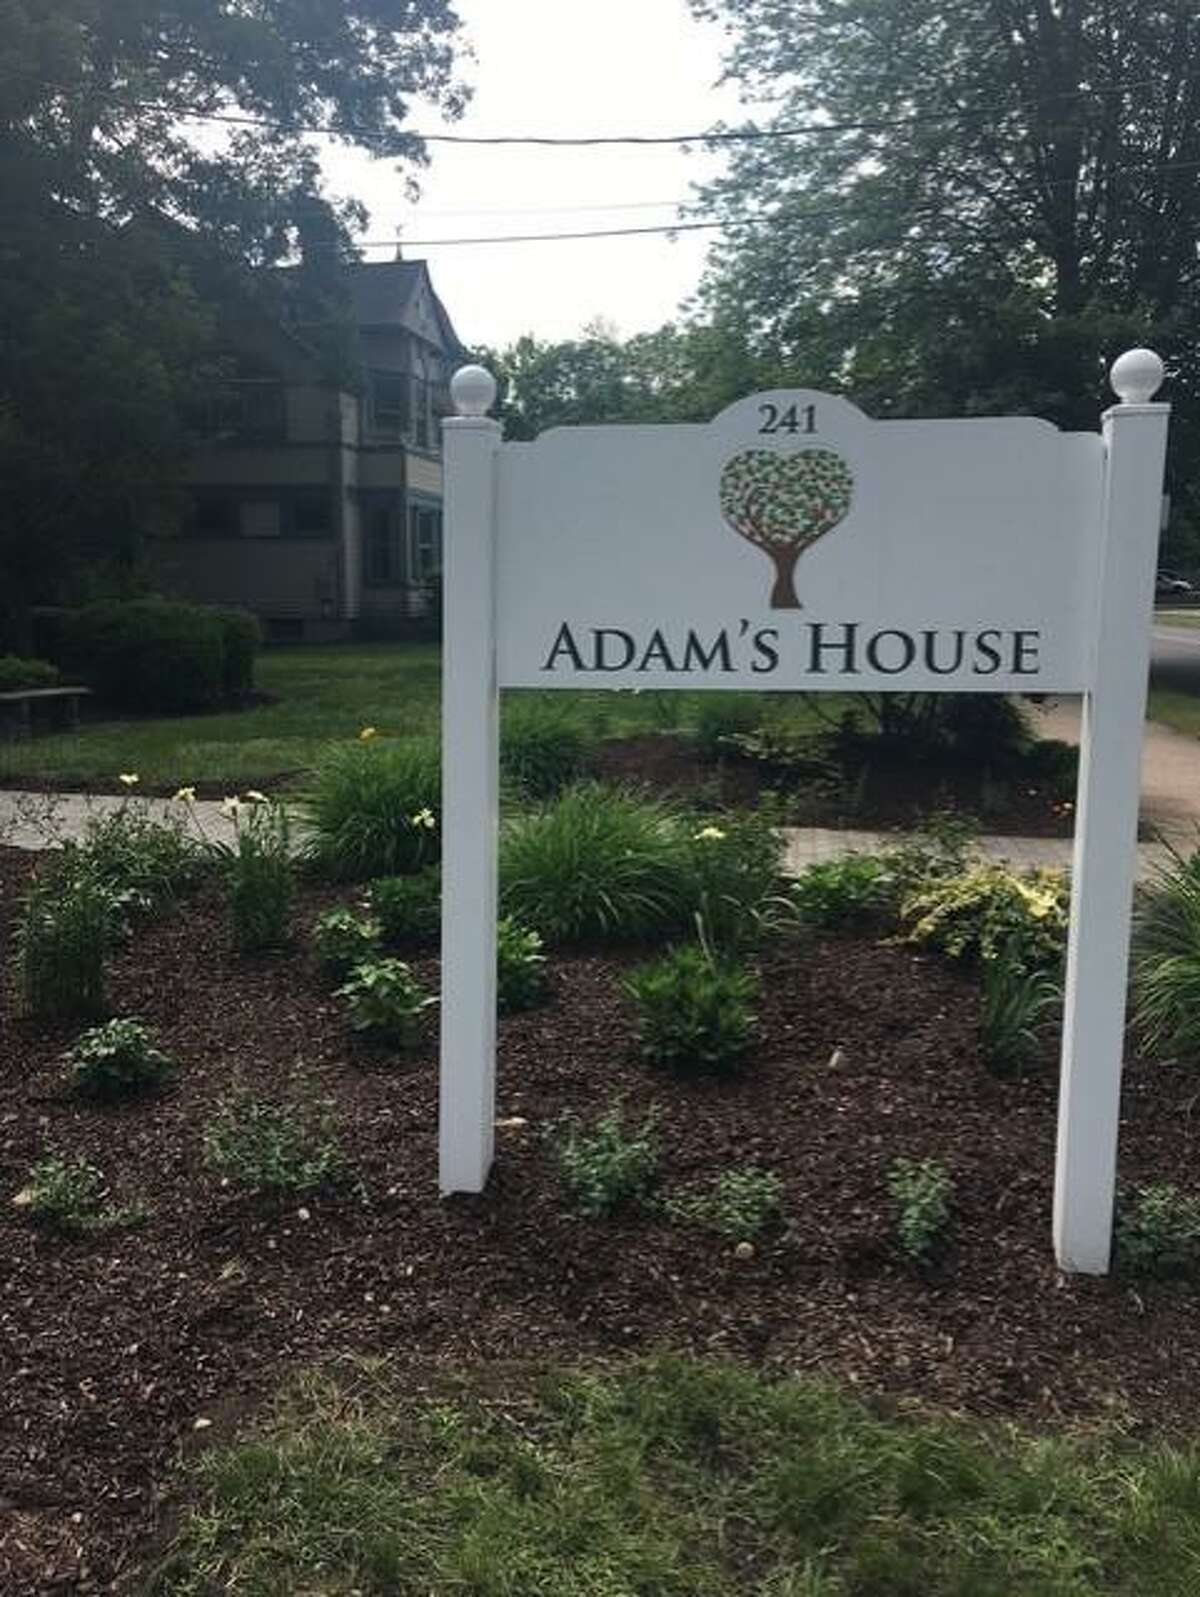 Adam's House, located in Shelton, is the only curriculum-based grief support operation in the state.